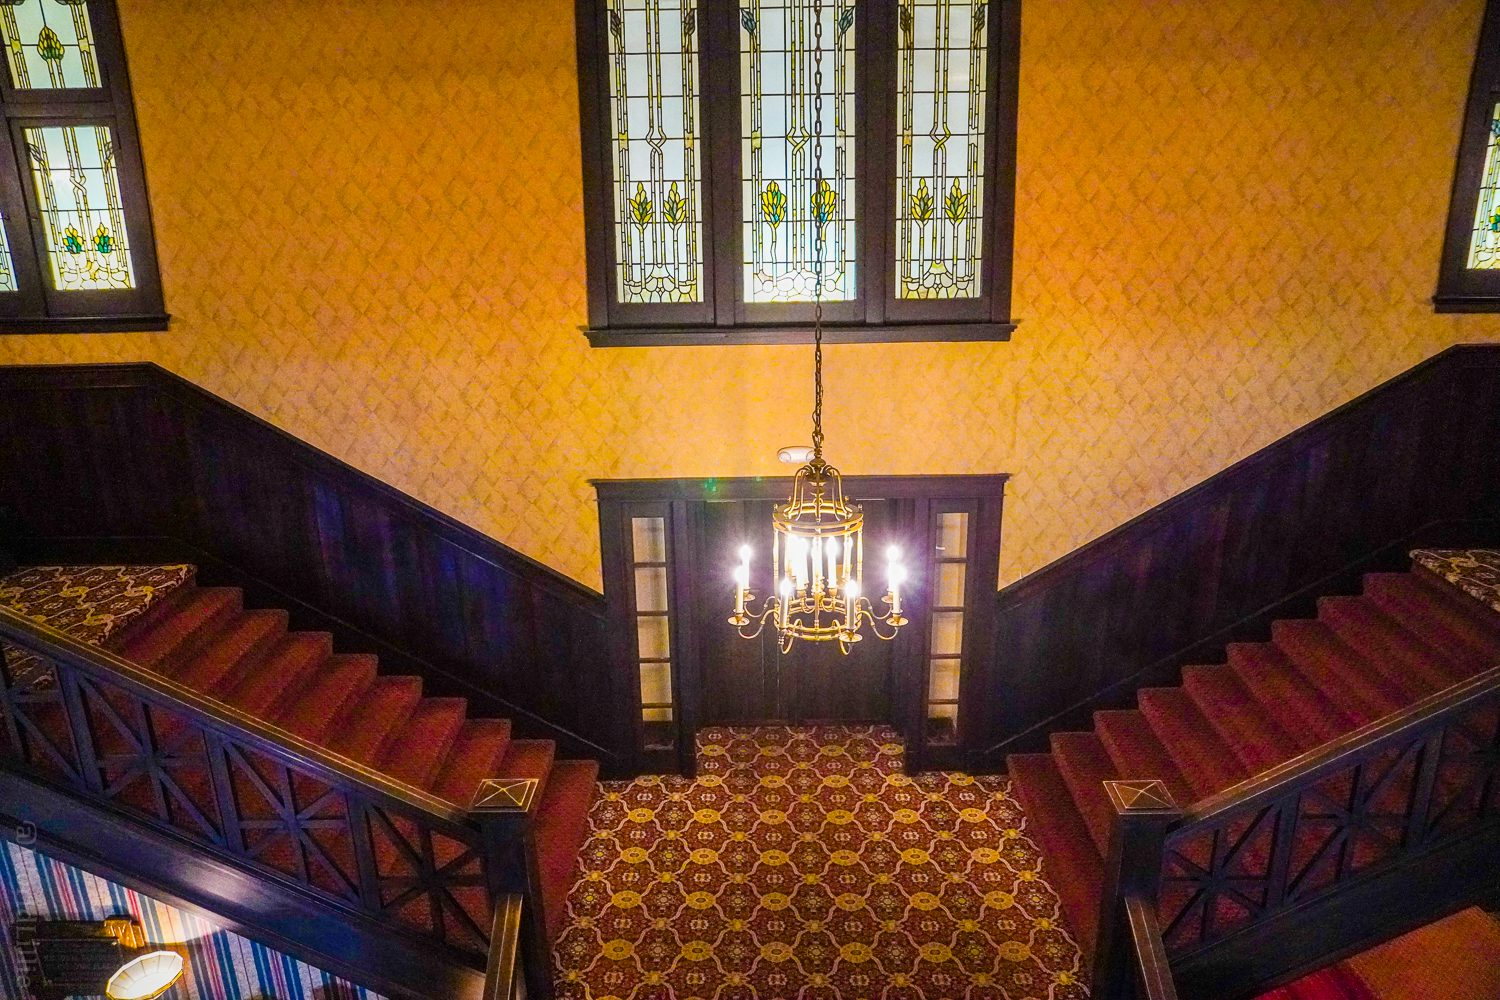 The impressive red staircase at the inn.